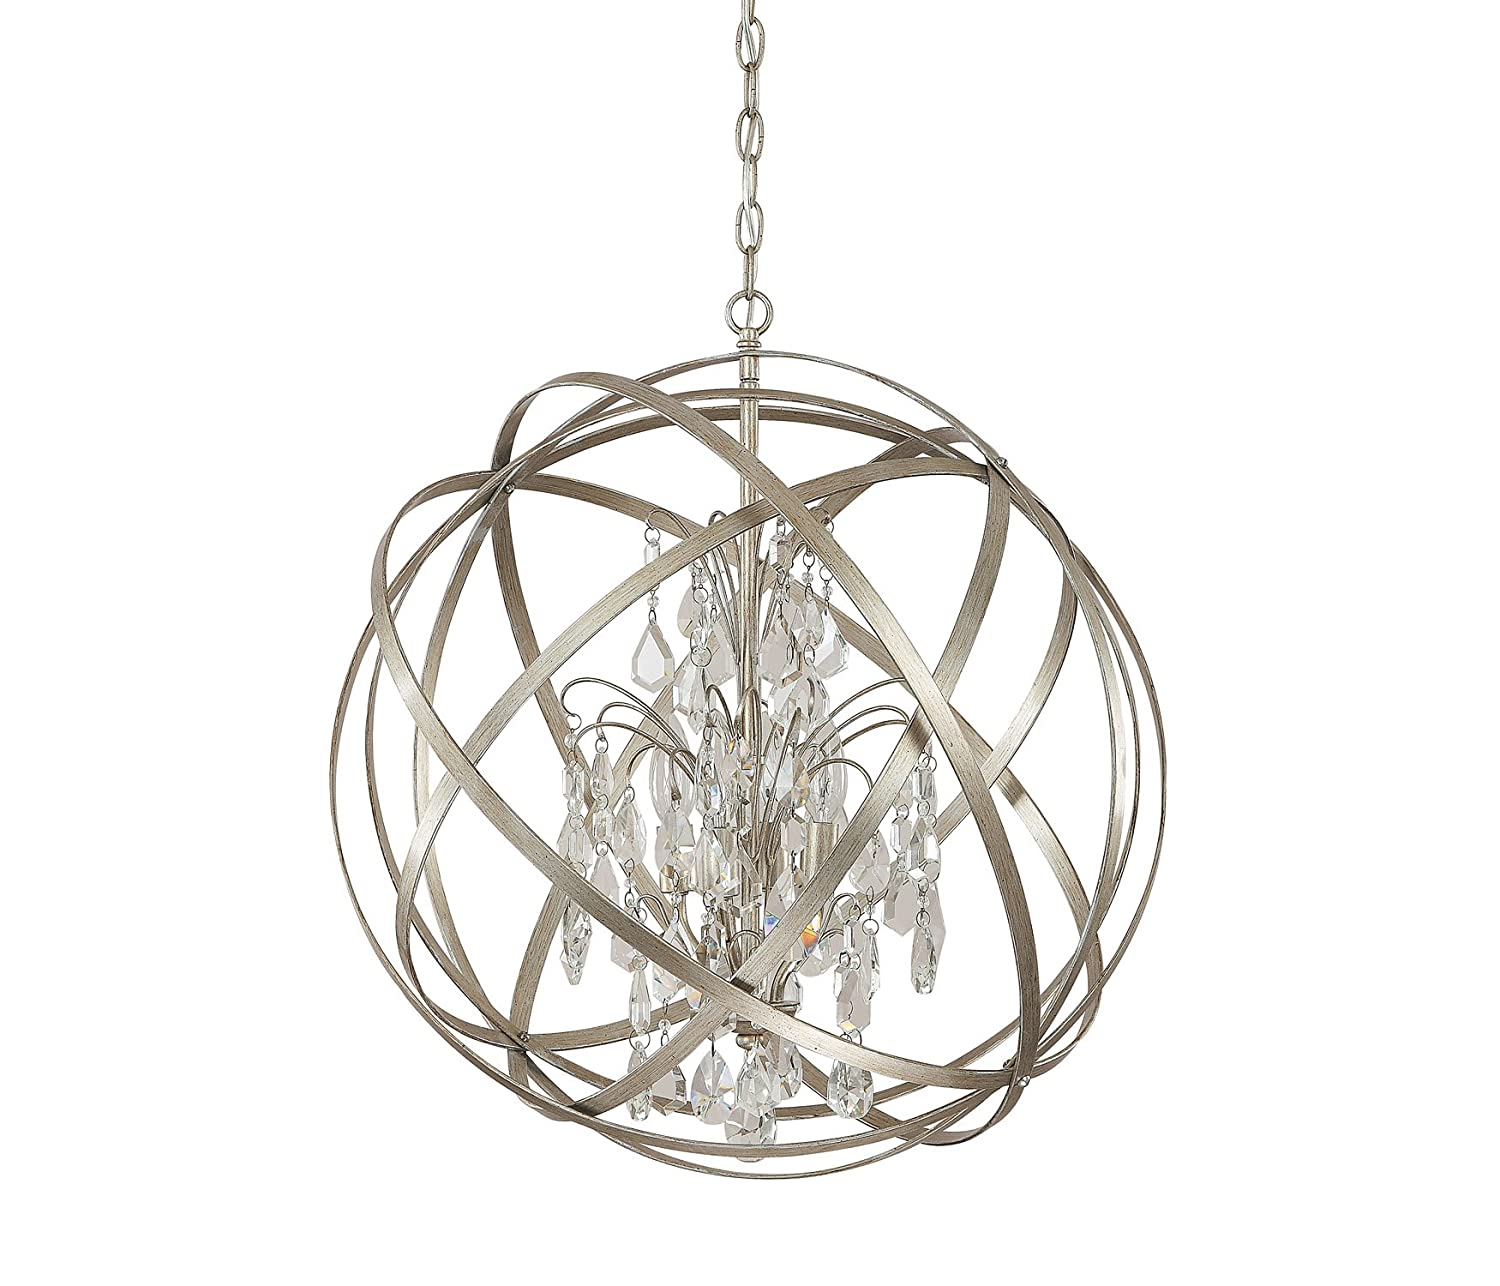 Capital lighting 4234rs cr axis 4 light pendant russet finish capital lighting 4234rs cr axis 4 light pendant russet finish with clear crystal accents ceiling pendant fixtures amazon aloadofball Image collections